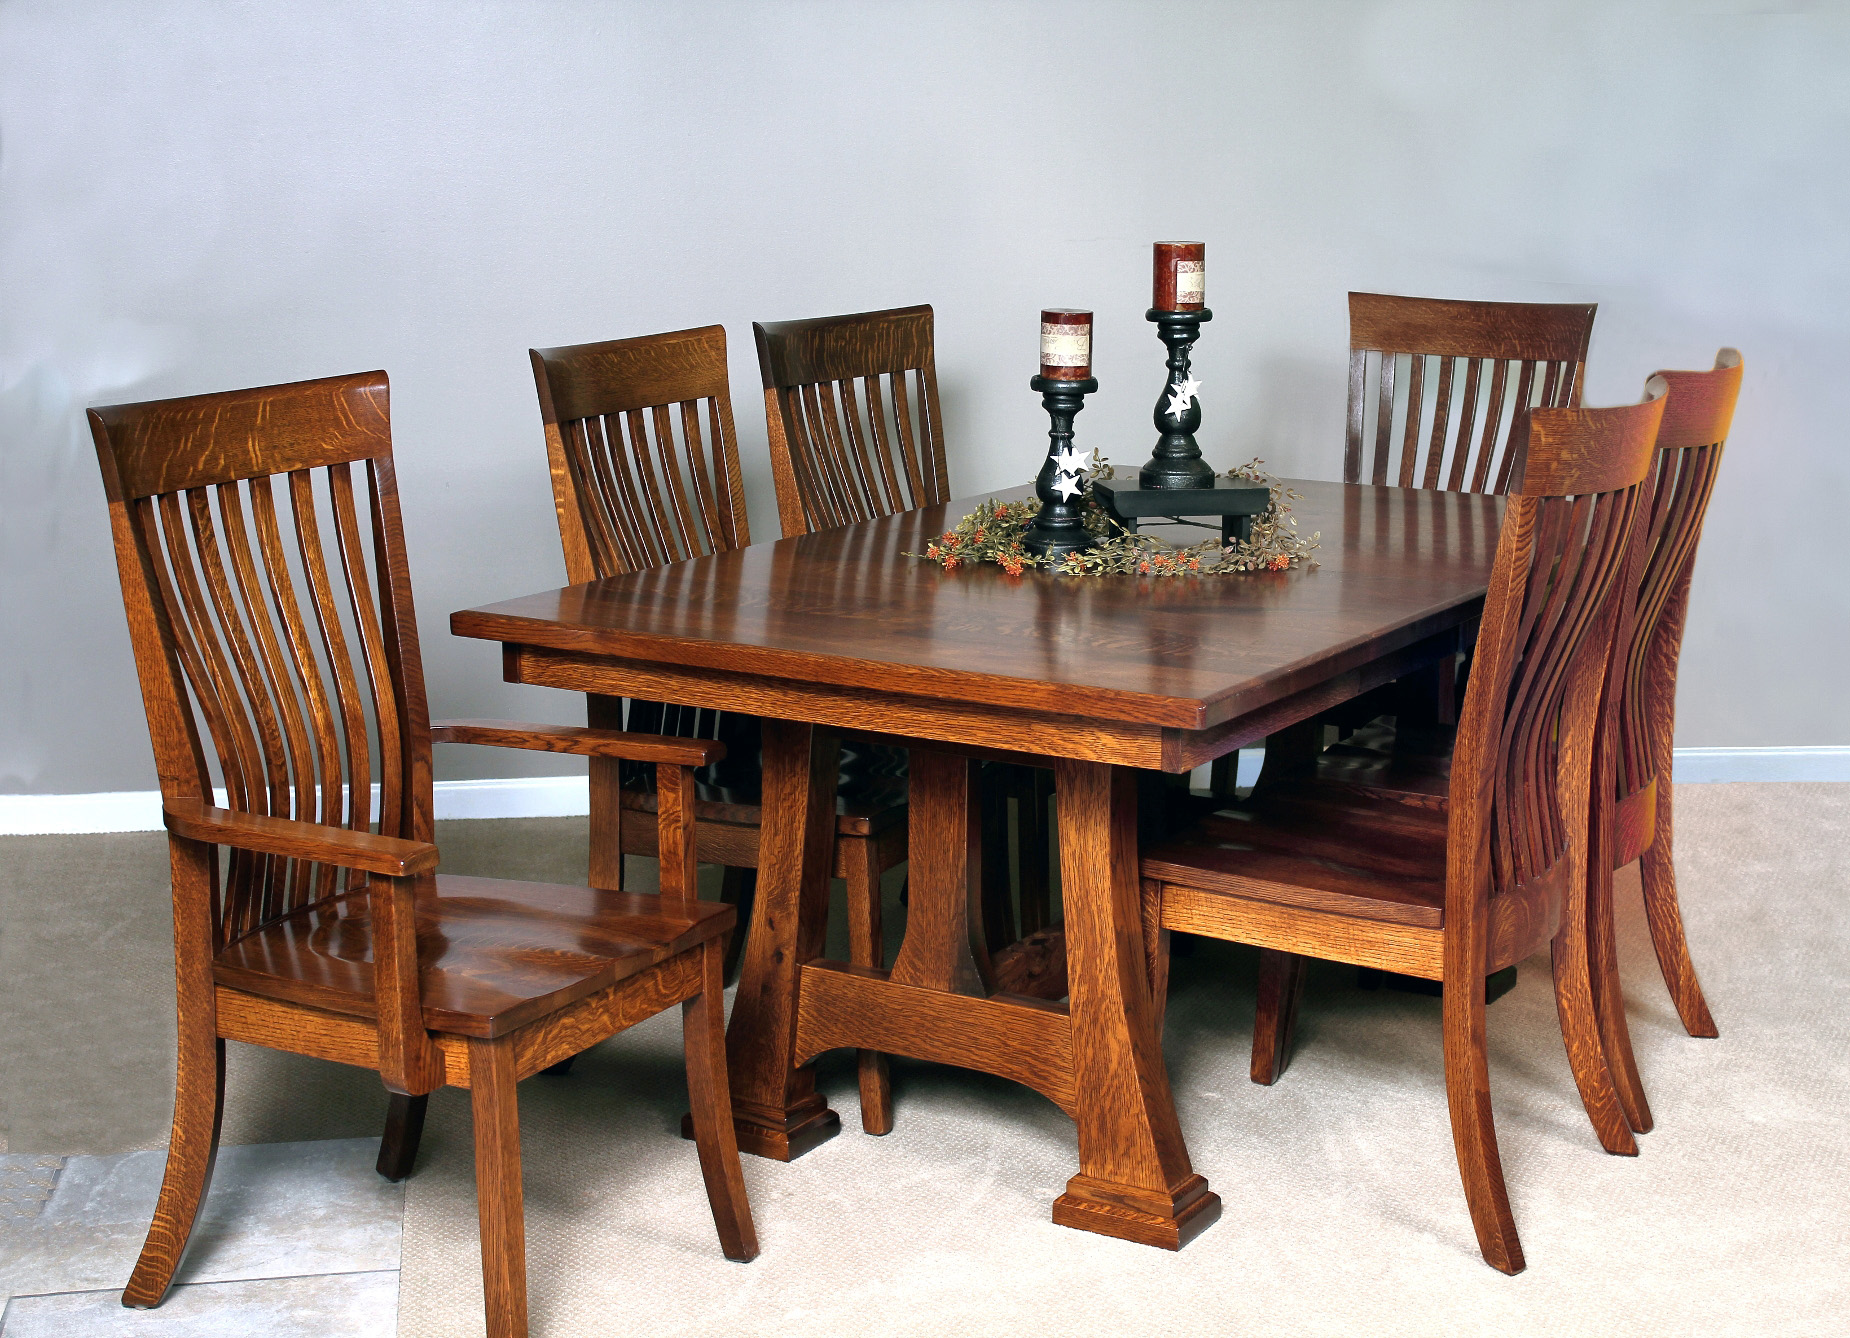 christy-dining-collection.jpg